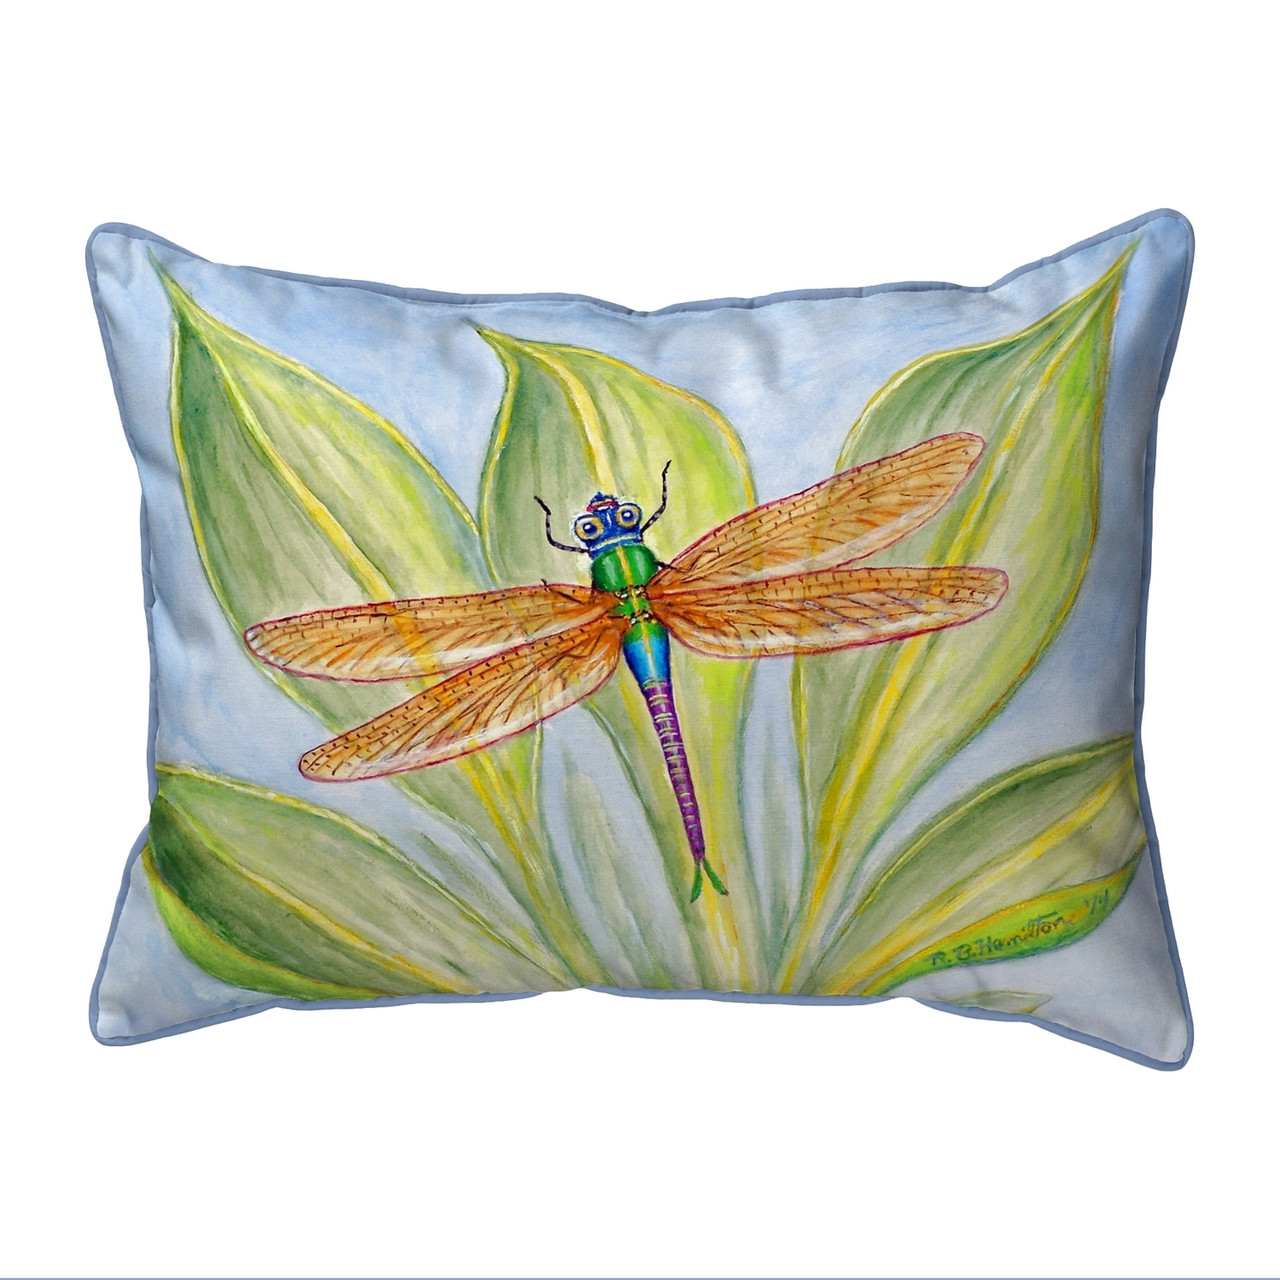 Dick's Dragonfly Pillows